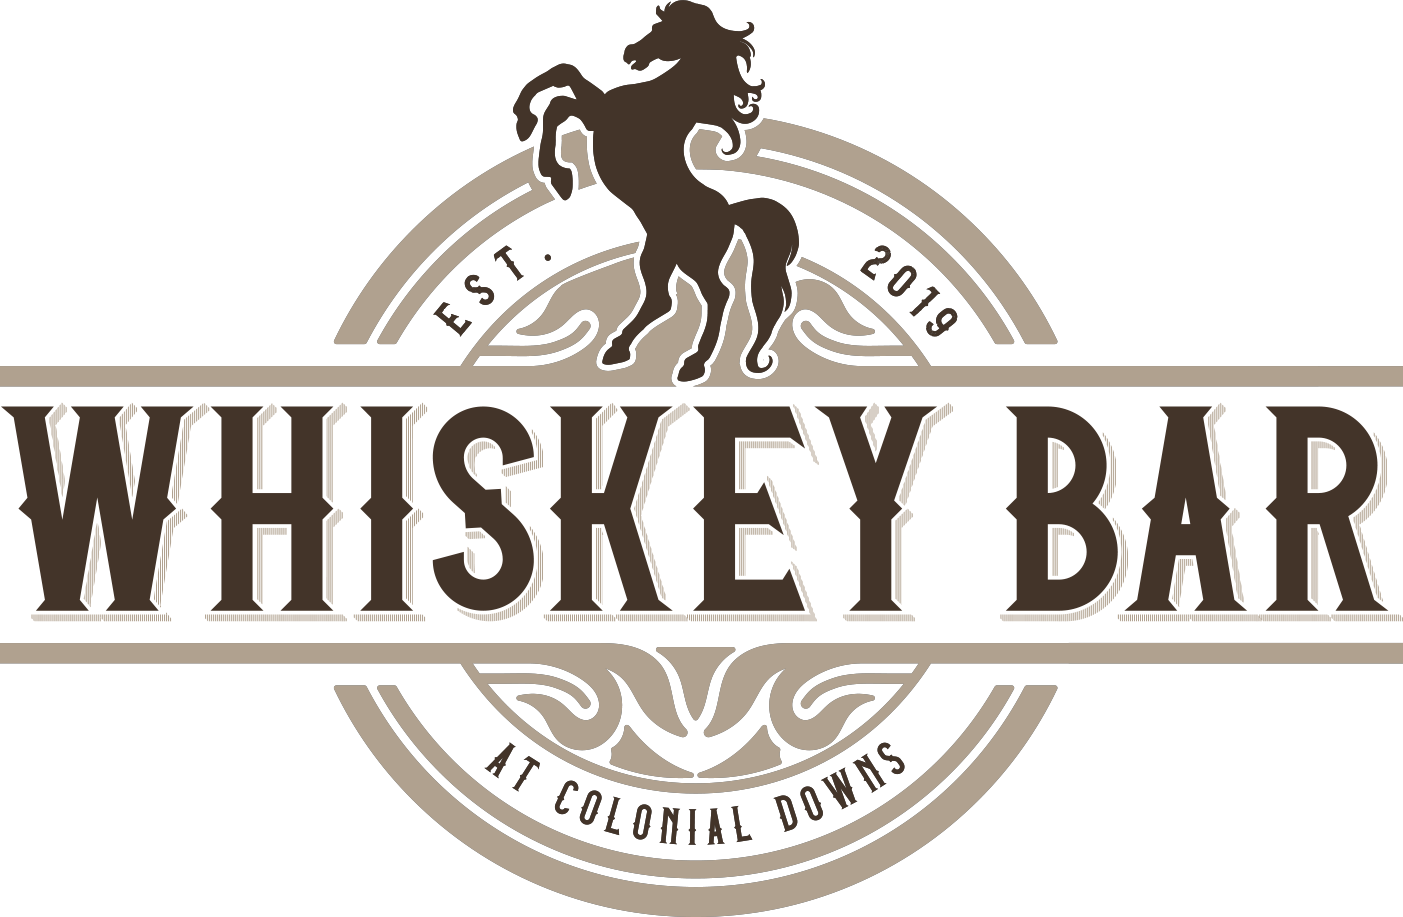 whiskey bar logo